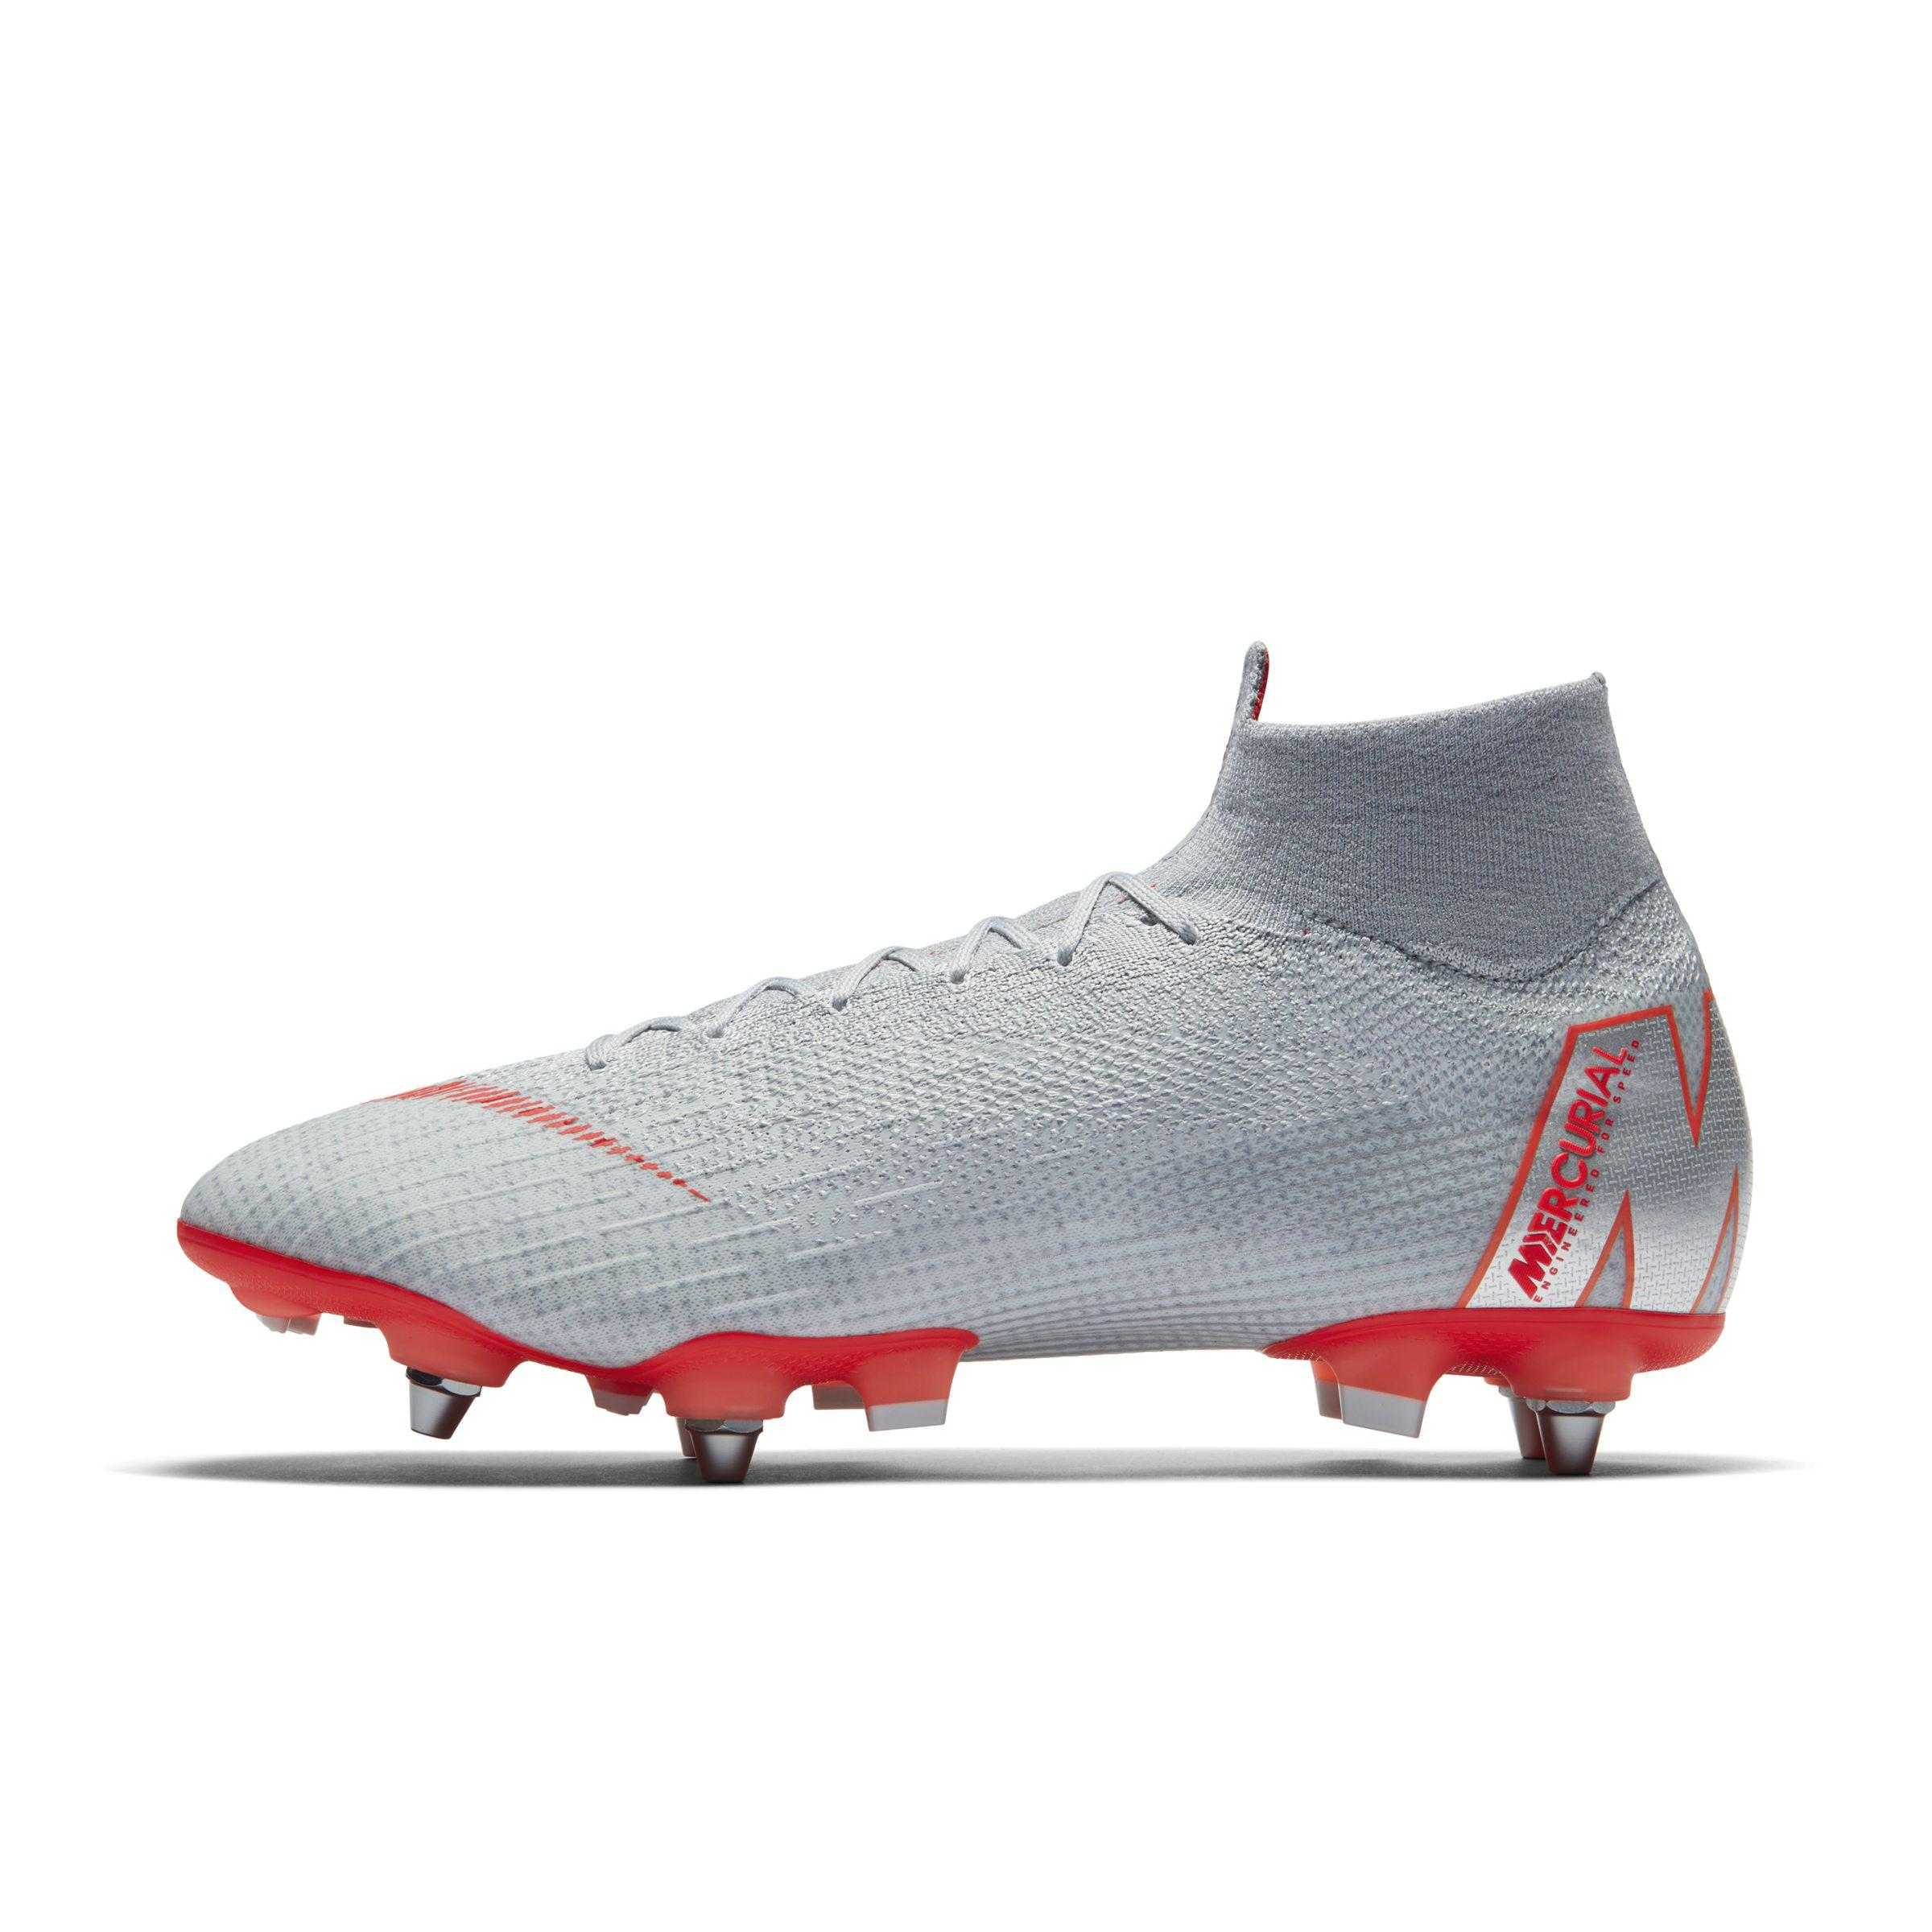 on wholesale save up to 80% buy good Mercurial Superfly 6 Elite Sg-pro Anti-clog Traction Soft-ground Pro  Football Boot